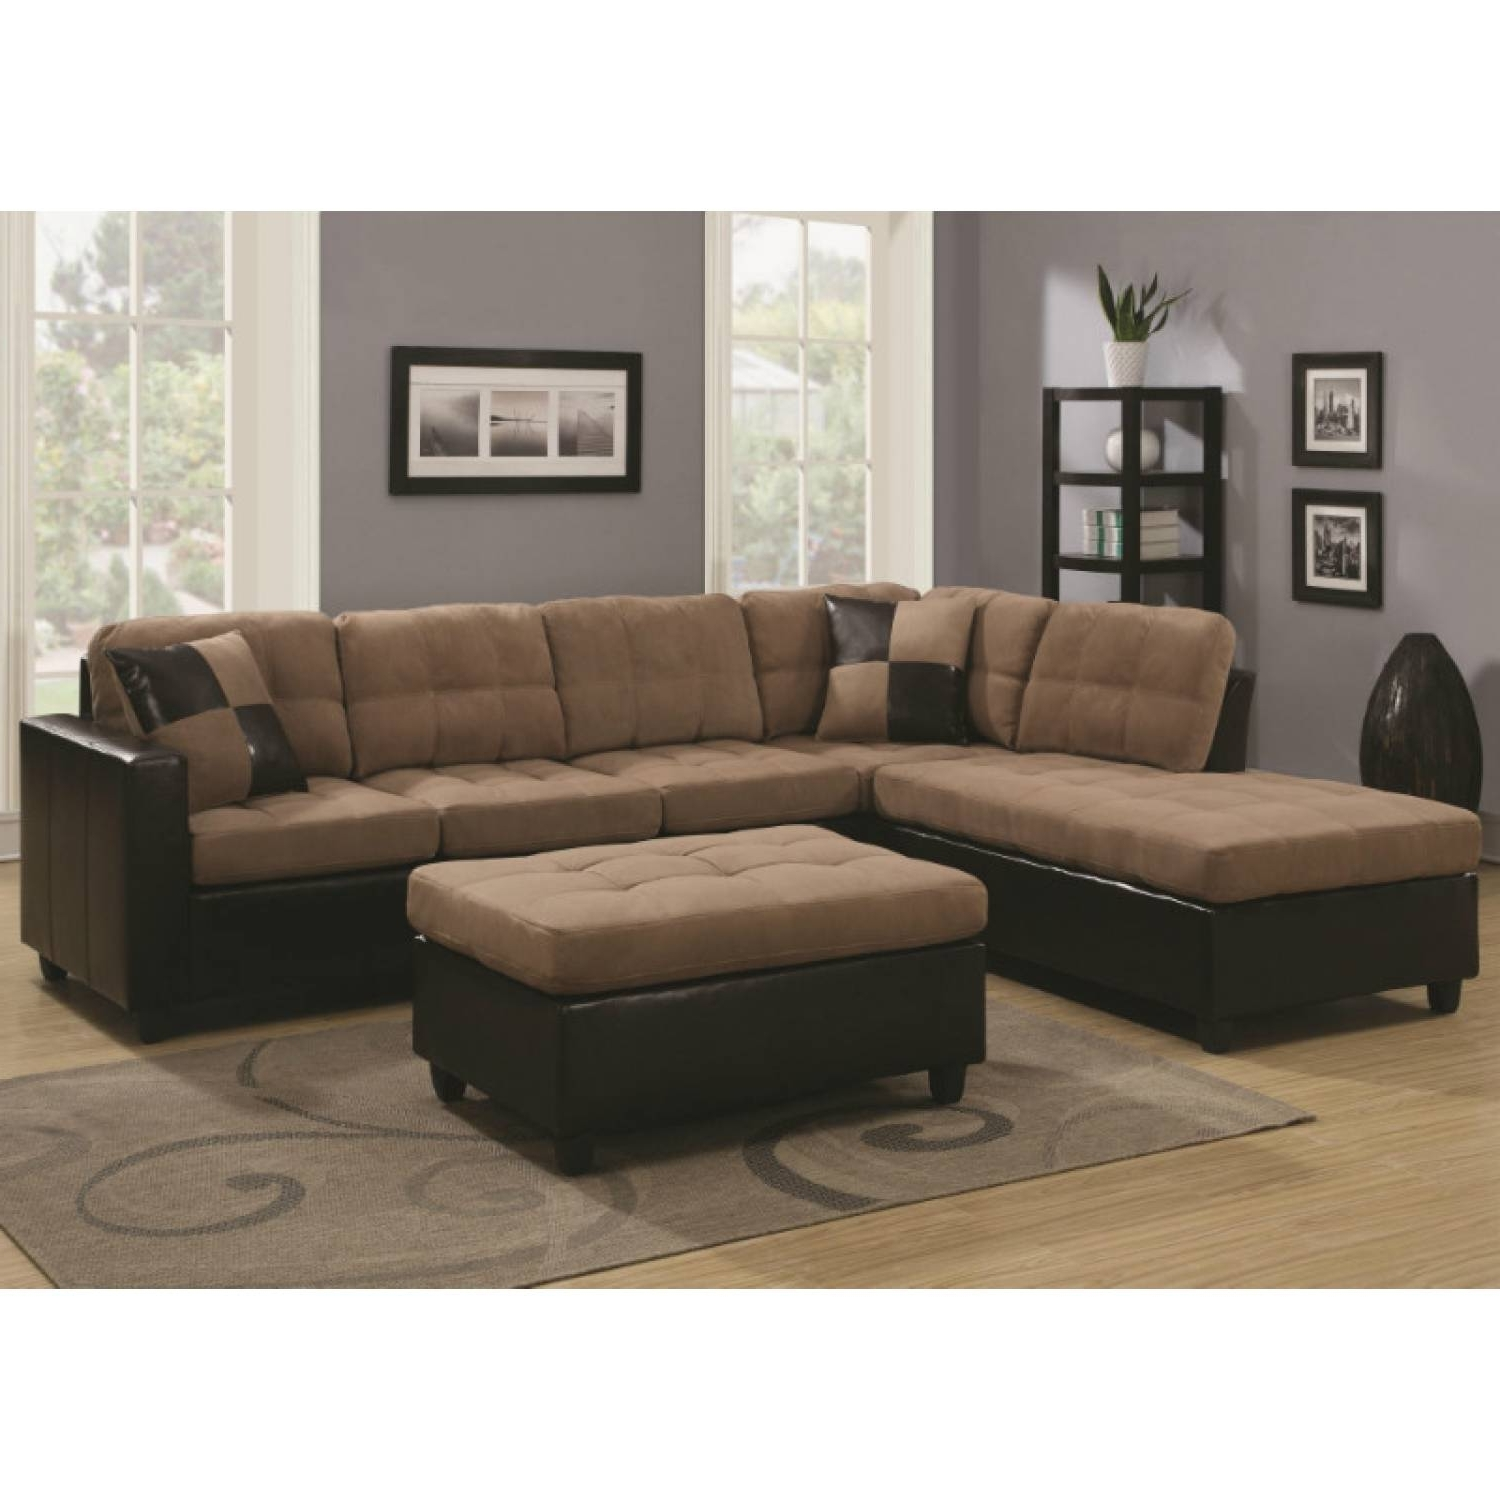 [%Sectional Sofas Discount – Sale Off 20% Furniture In San Francisco Regarding Well Liked San Francisco Sectional Sofas|San Francisco Sectional Sofas In Most Current Sectional Sofas Discount – Sale Off 20% Furniture In San Francisco|Preferred San Francisco Sectional Sofas With Regard To Sectional Sofas Discount – Sale Off 20% Furniture In San Francisco|Well Known Sectional Sofas Discount – Sale Off 20% Furniture In San Francisco Intended For San Francisco Sectional Sofas%] (View 5 of 15)